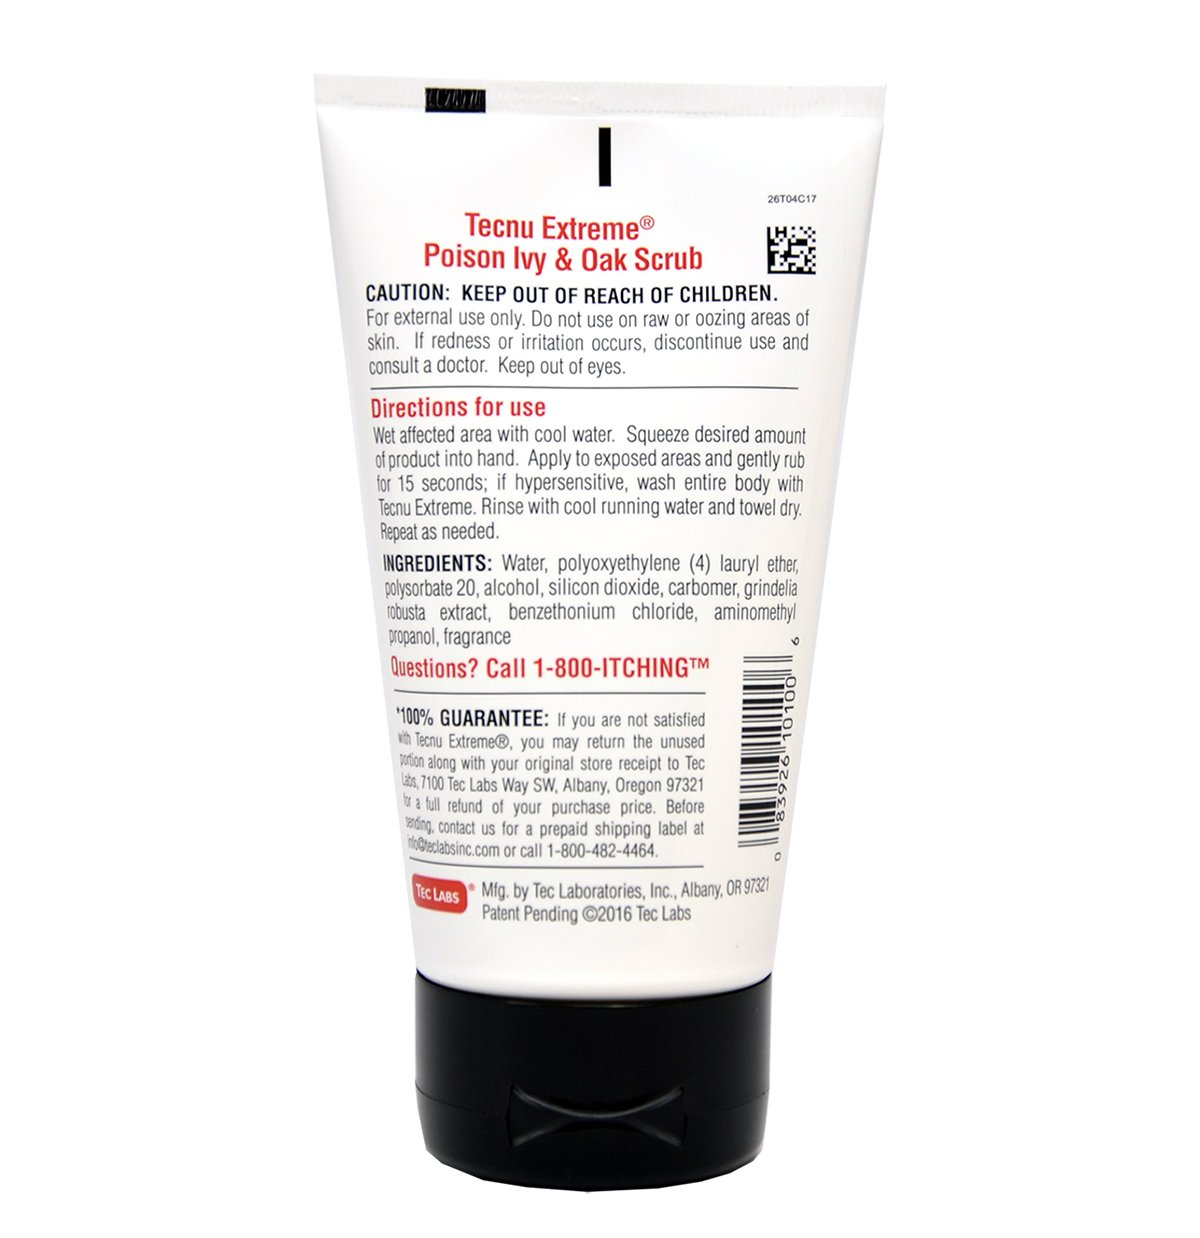 Tecnu Extreme Poison Ivy & Oak Scrub—Removes Toxin from Skin that Causes Poison Ivy and Poison Oak Rash, 4-ounce Tube by Tecnu (Image #2)